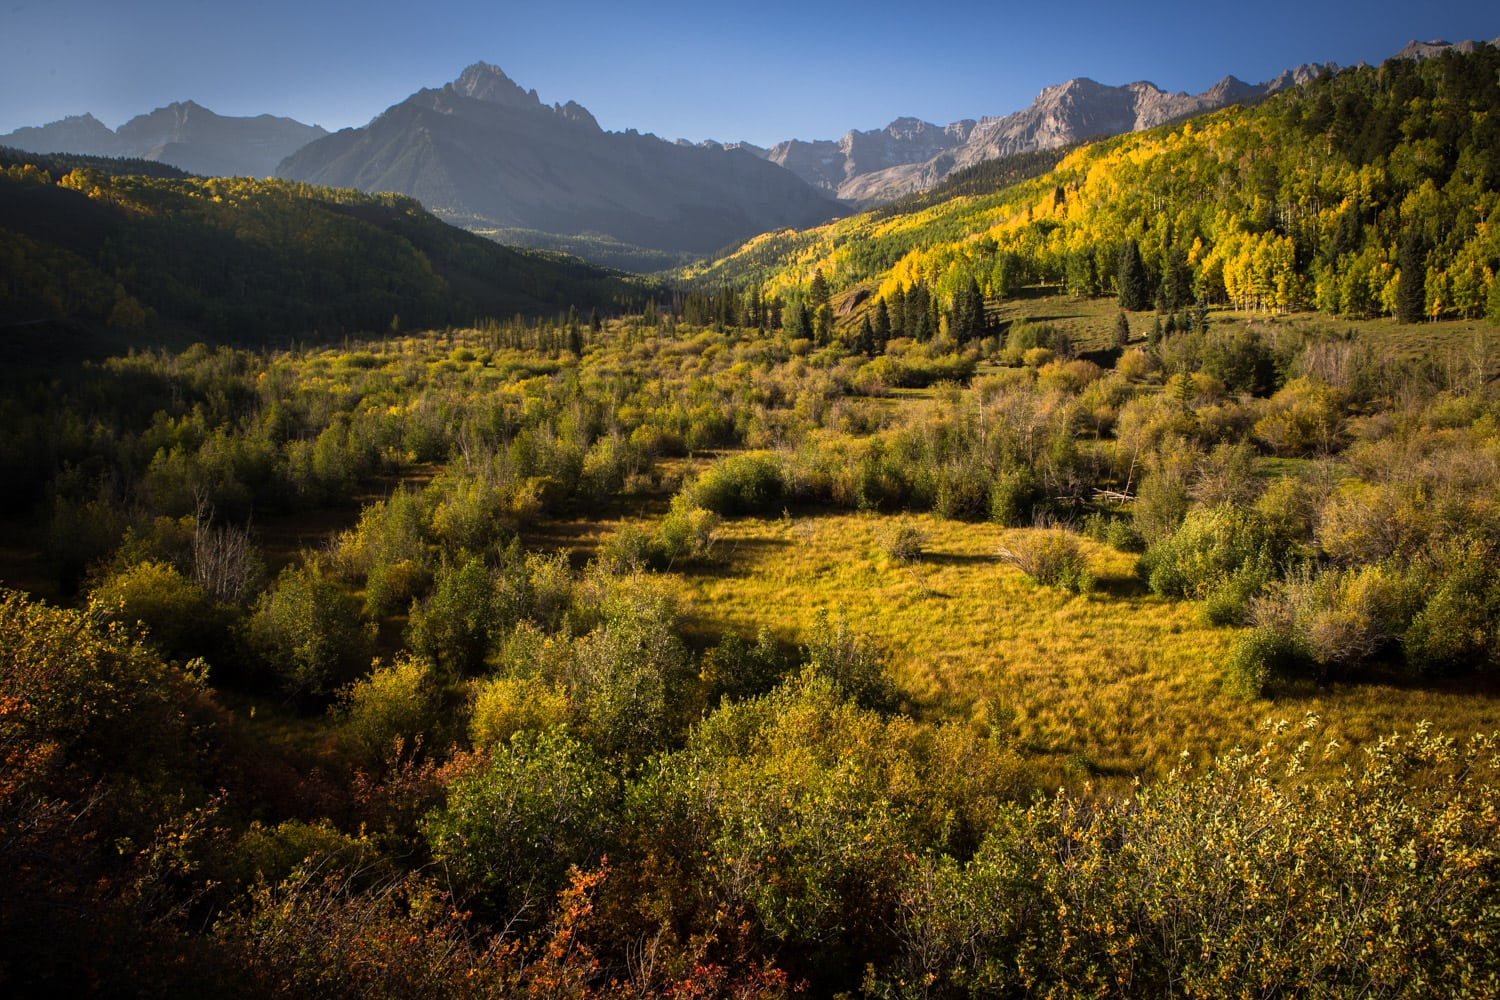 Sneffels Range // Experience vibrant fall Colorado foliage with this road trip itinerary that takes you through some of the best aspen groves in the state.